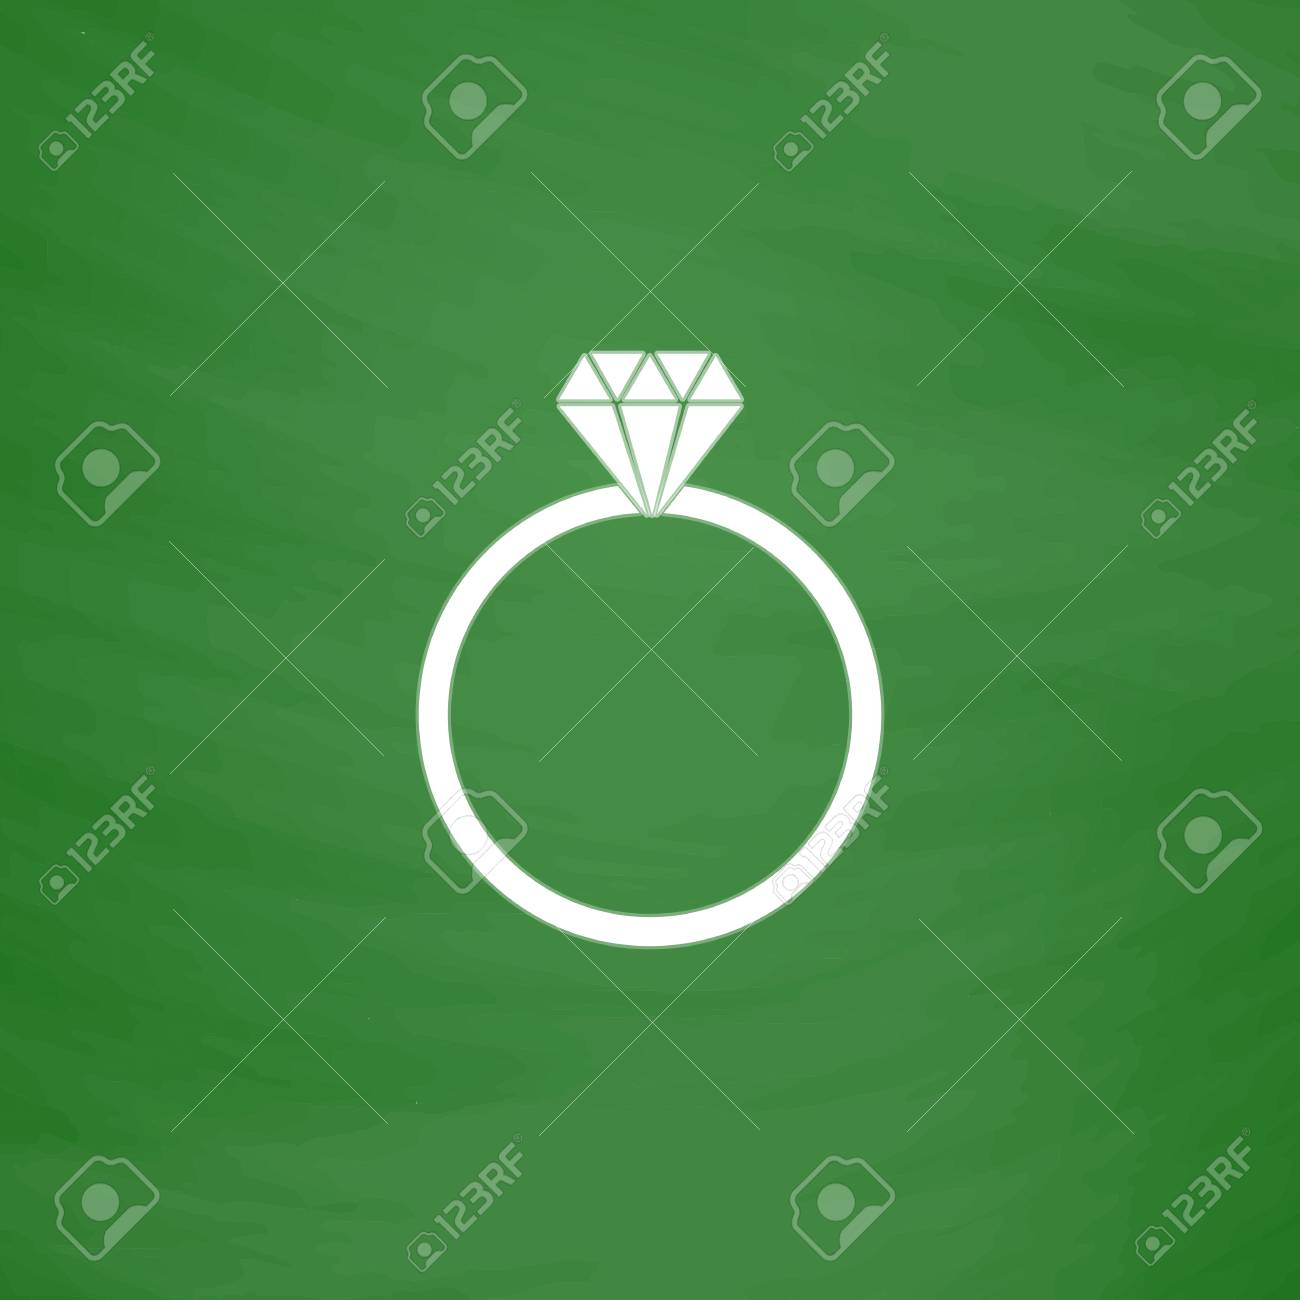 Diamond Engagement Ring Flat Icon Imitation Draw With White Chalk On Green Chalkboard: Drawn Chalkboard Wedding Ring At Reisefeber.org